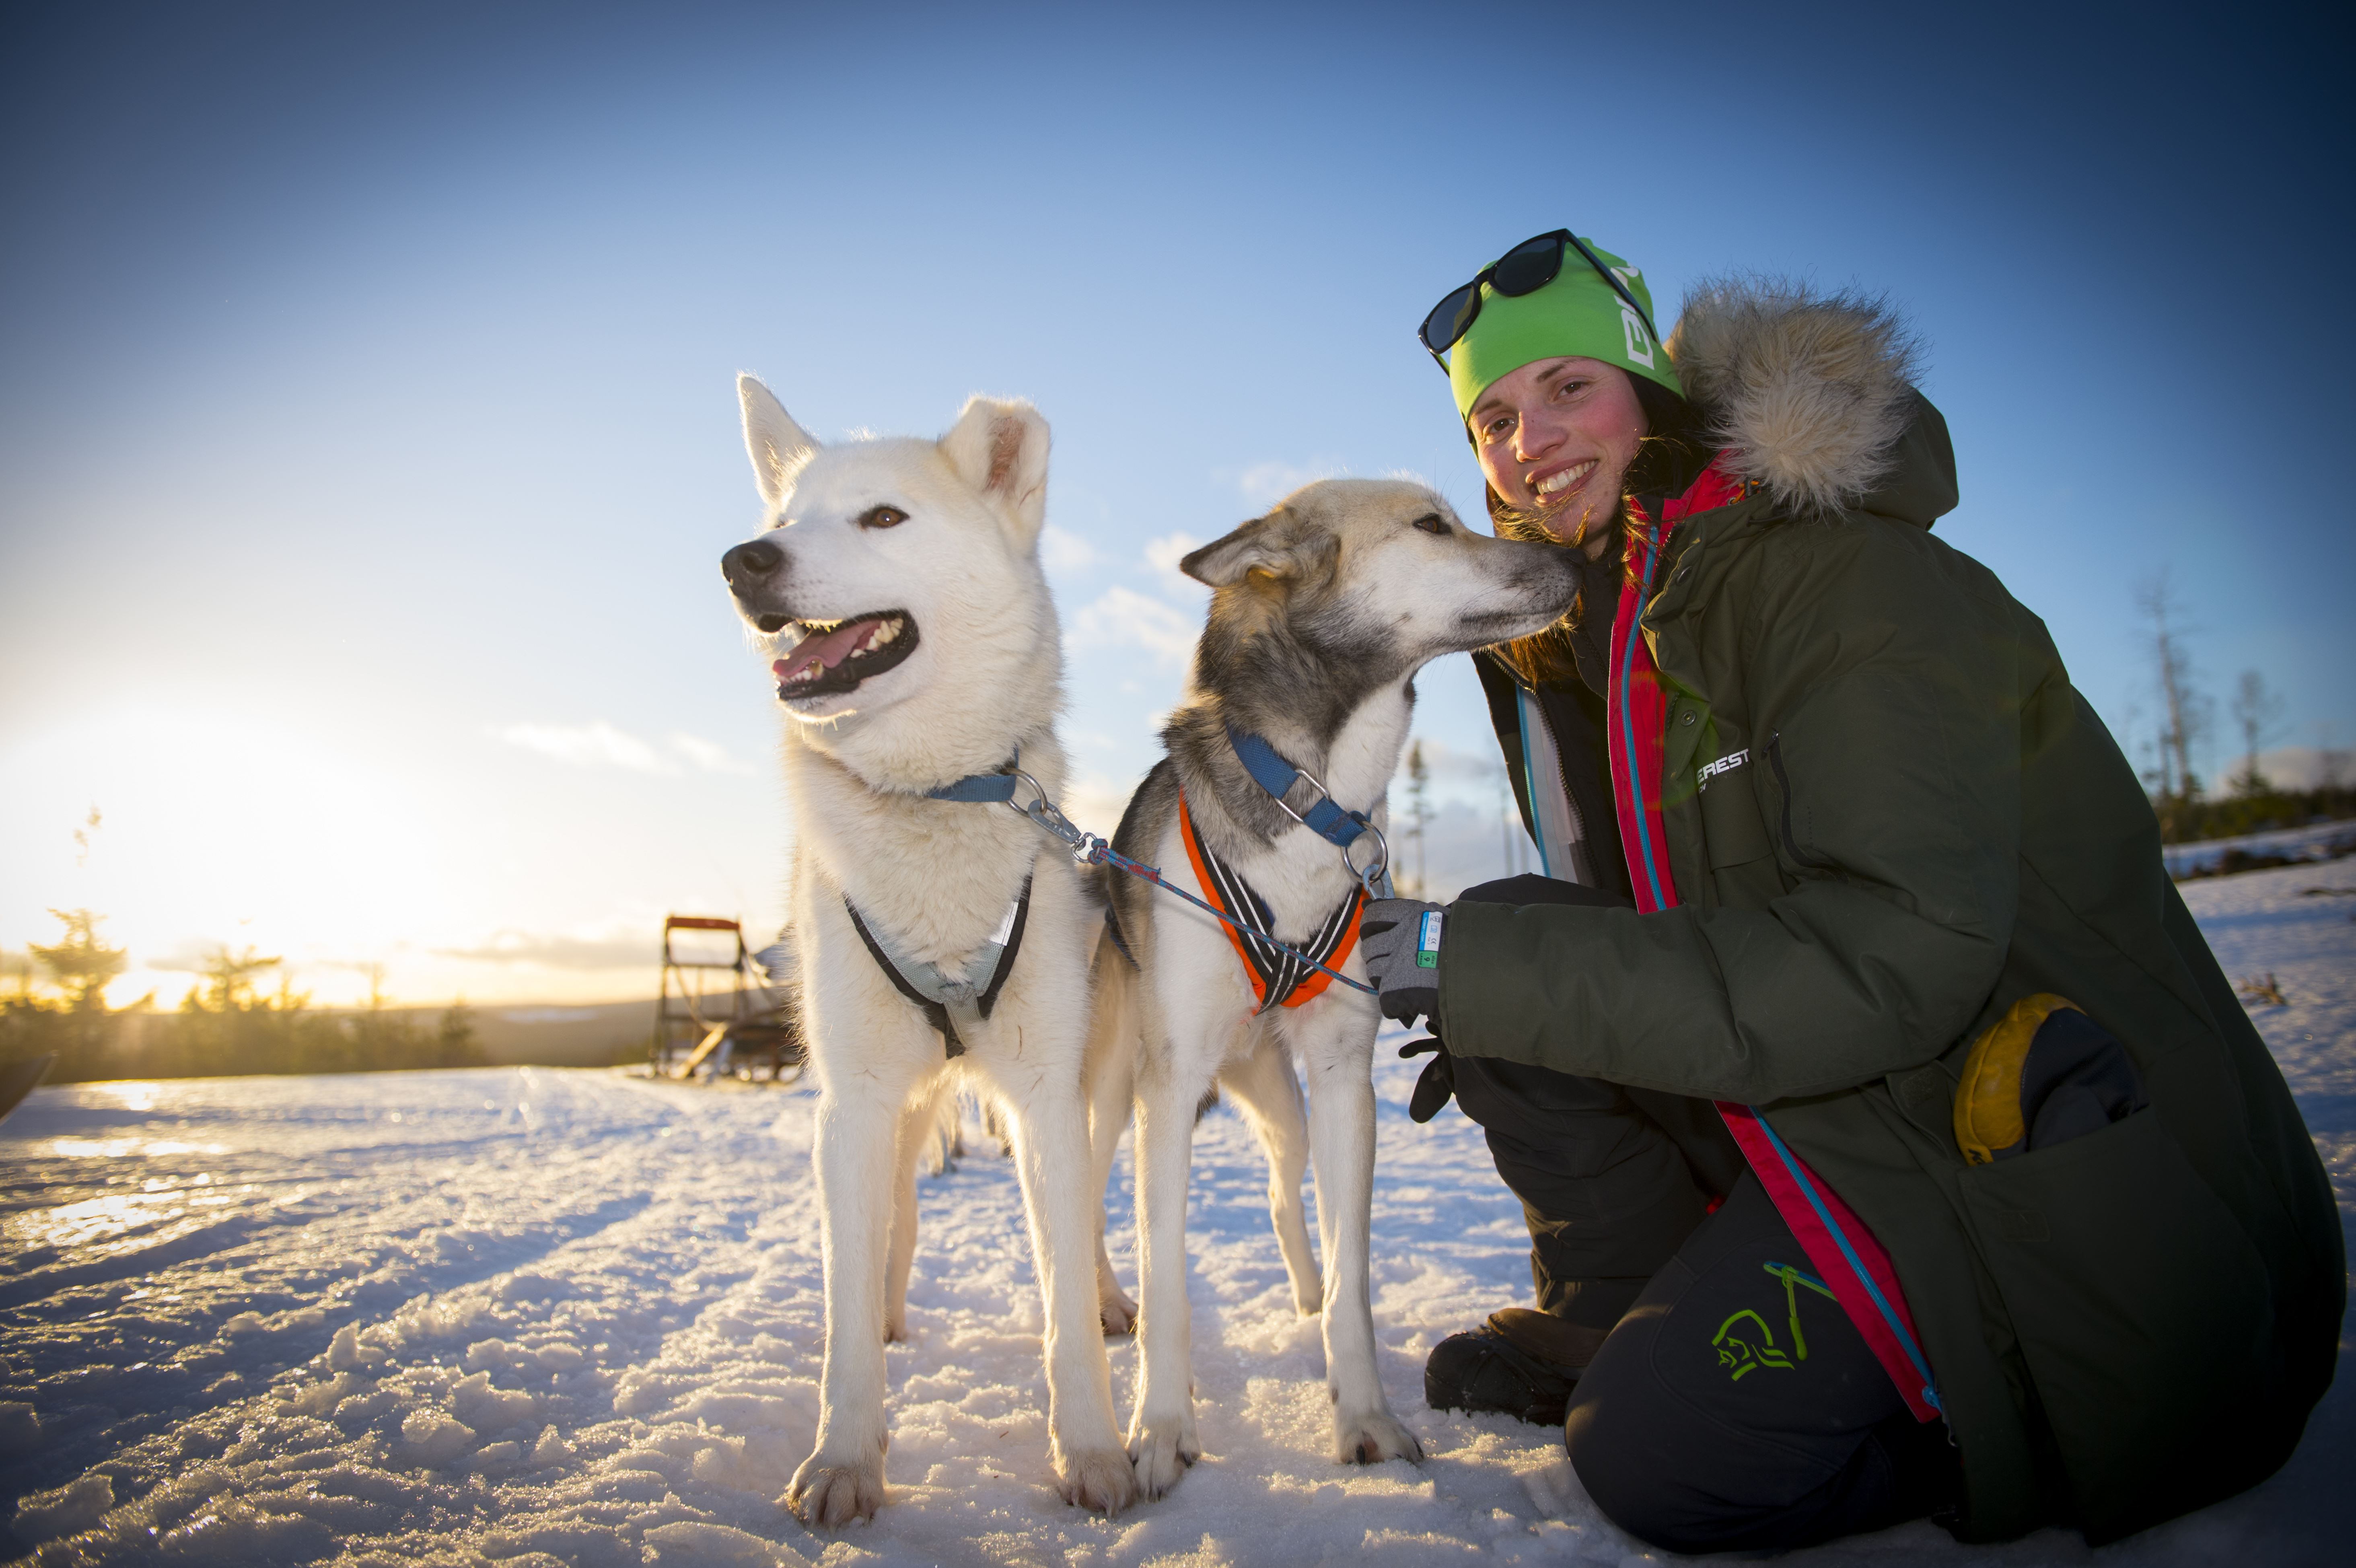 Go dog sledding in Grano